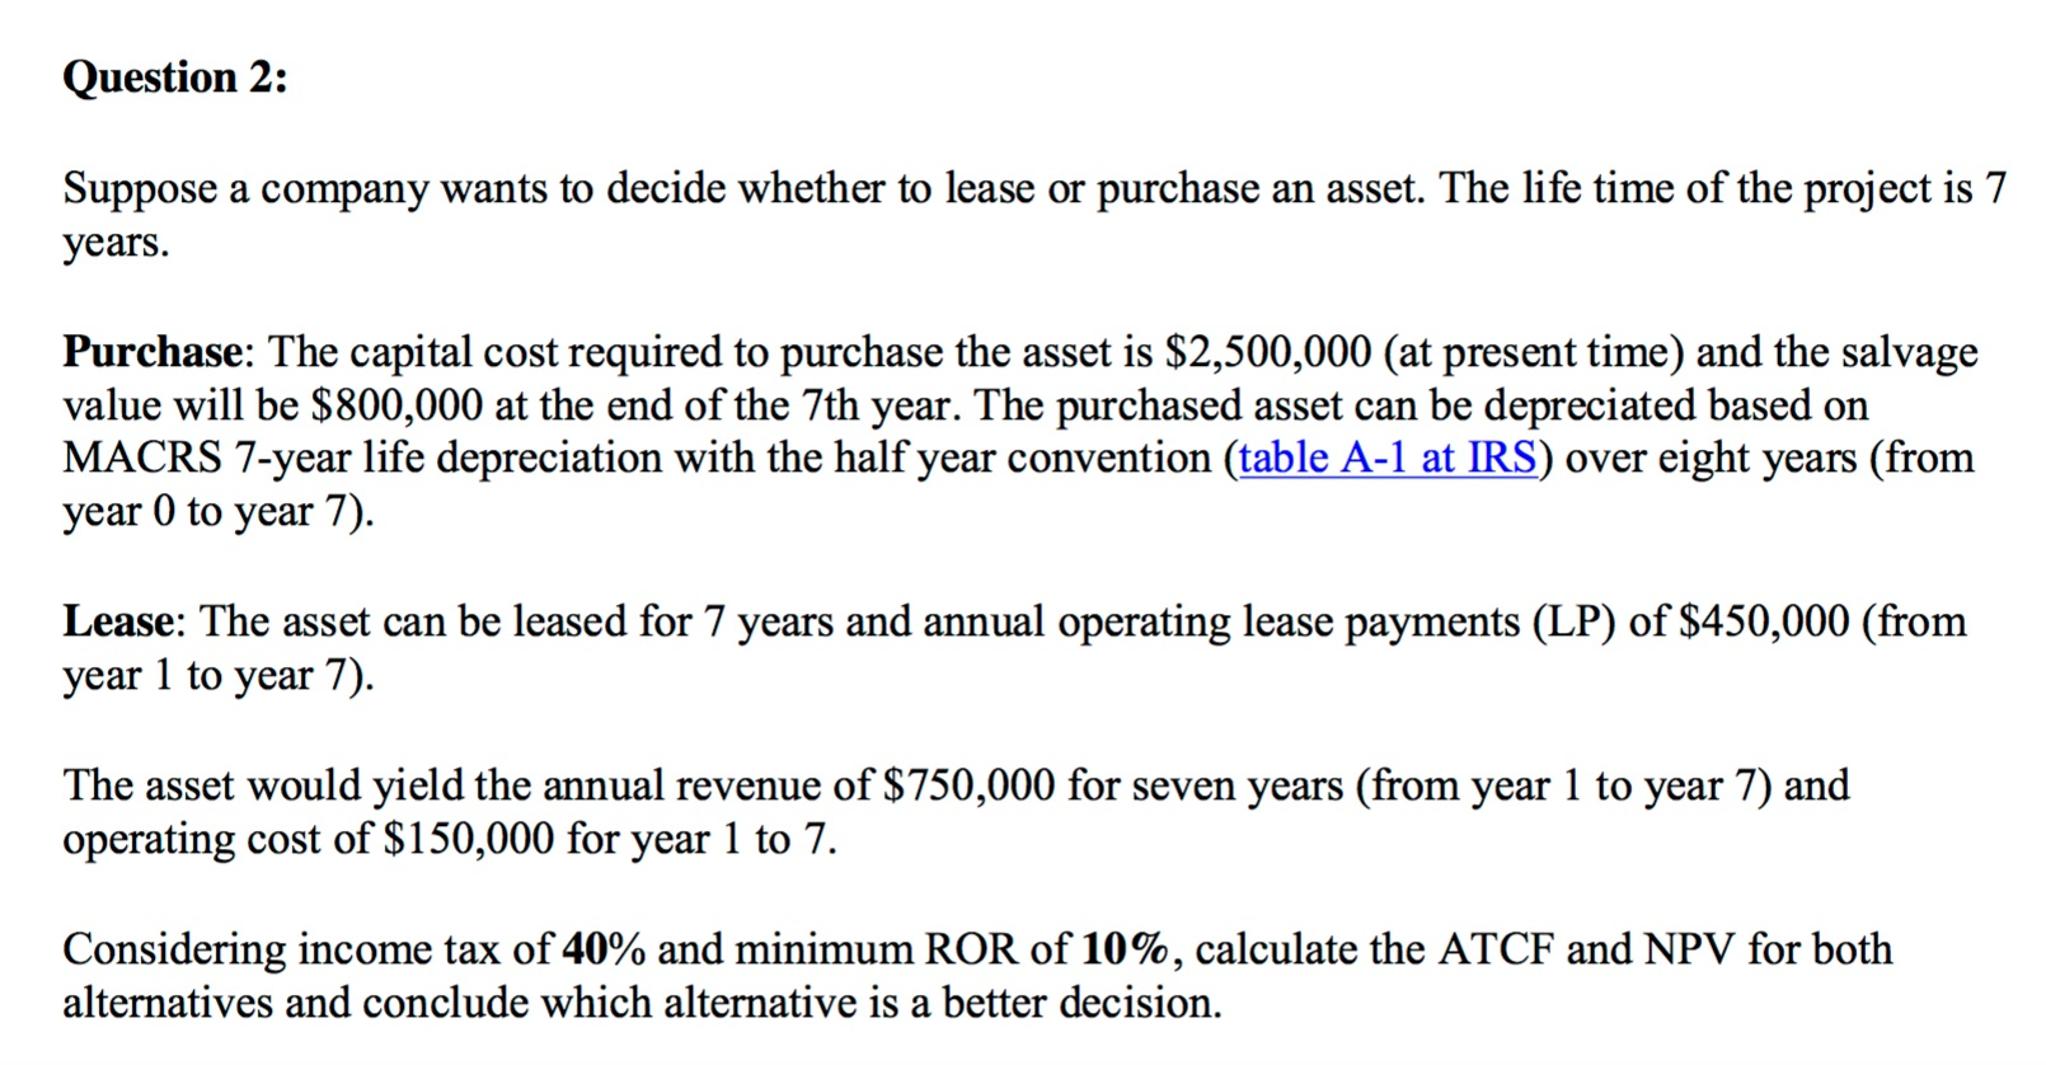 decision to lease or buy at warf computers Chapter 27 the decision to lease or buy at warf computers 2 the book value of the equipment in year 2 will be: book value = $5,000,000 - $5,000,000(3333 + 4445) book value = $1,111,000 so, the aftertax salvage value in year 2 will be: aftertax salvage value = $2,000,000 + ($1,111,000 - 2,000,000)(35) aftertax salvage value = $1,688,850 so, the nal of the lease under the new terms would.